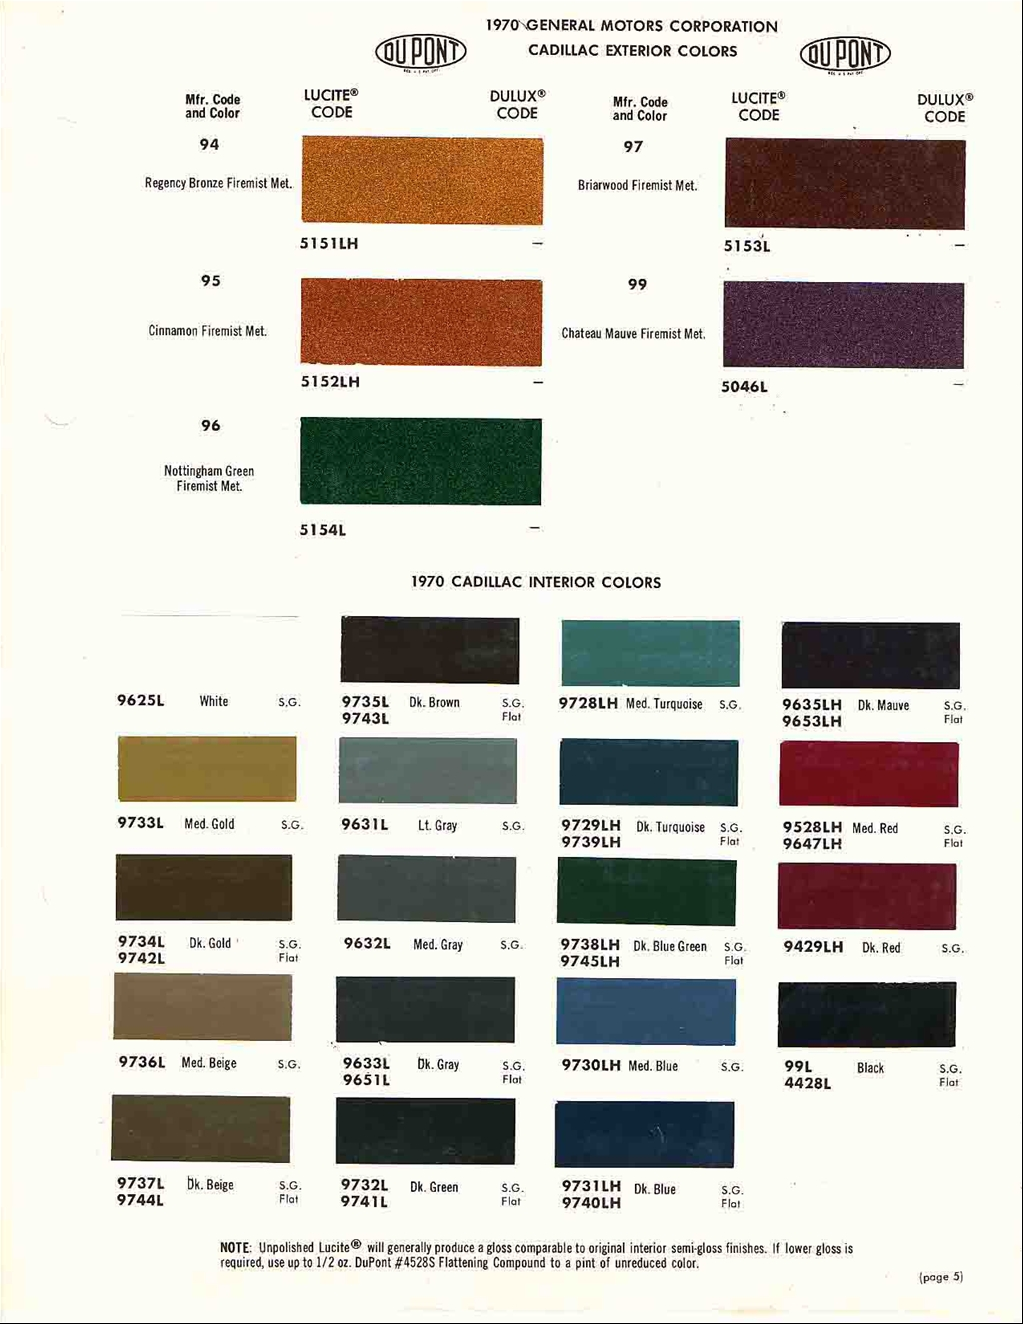 1961 Cadillac Paint Colors 1961 Cadillac Exterior Paint Chip Palette Paint Chips 1961 Pontiac